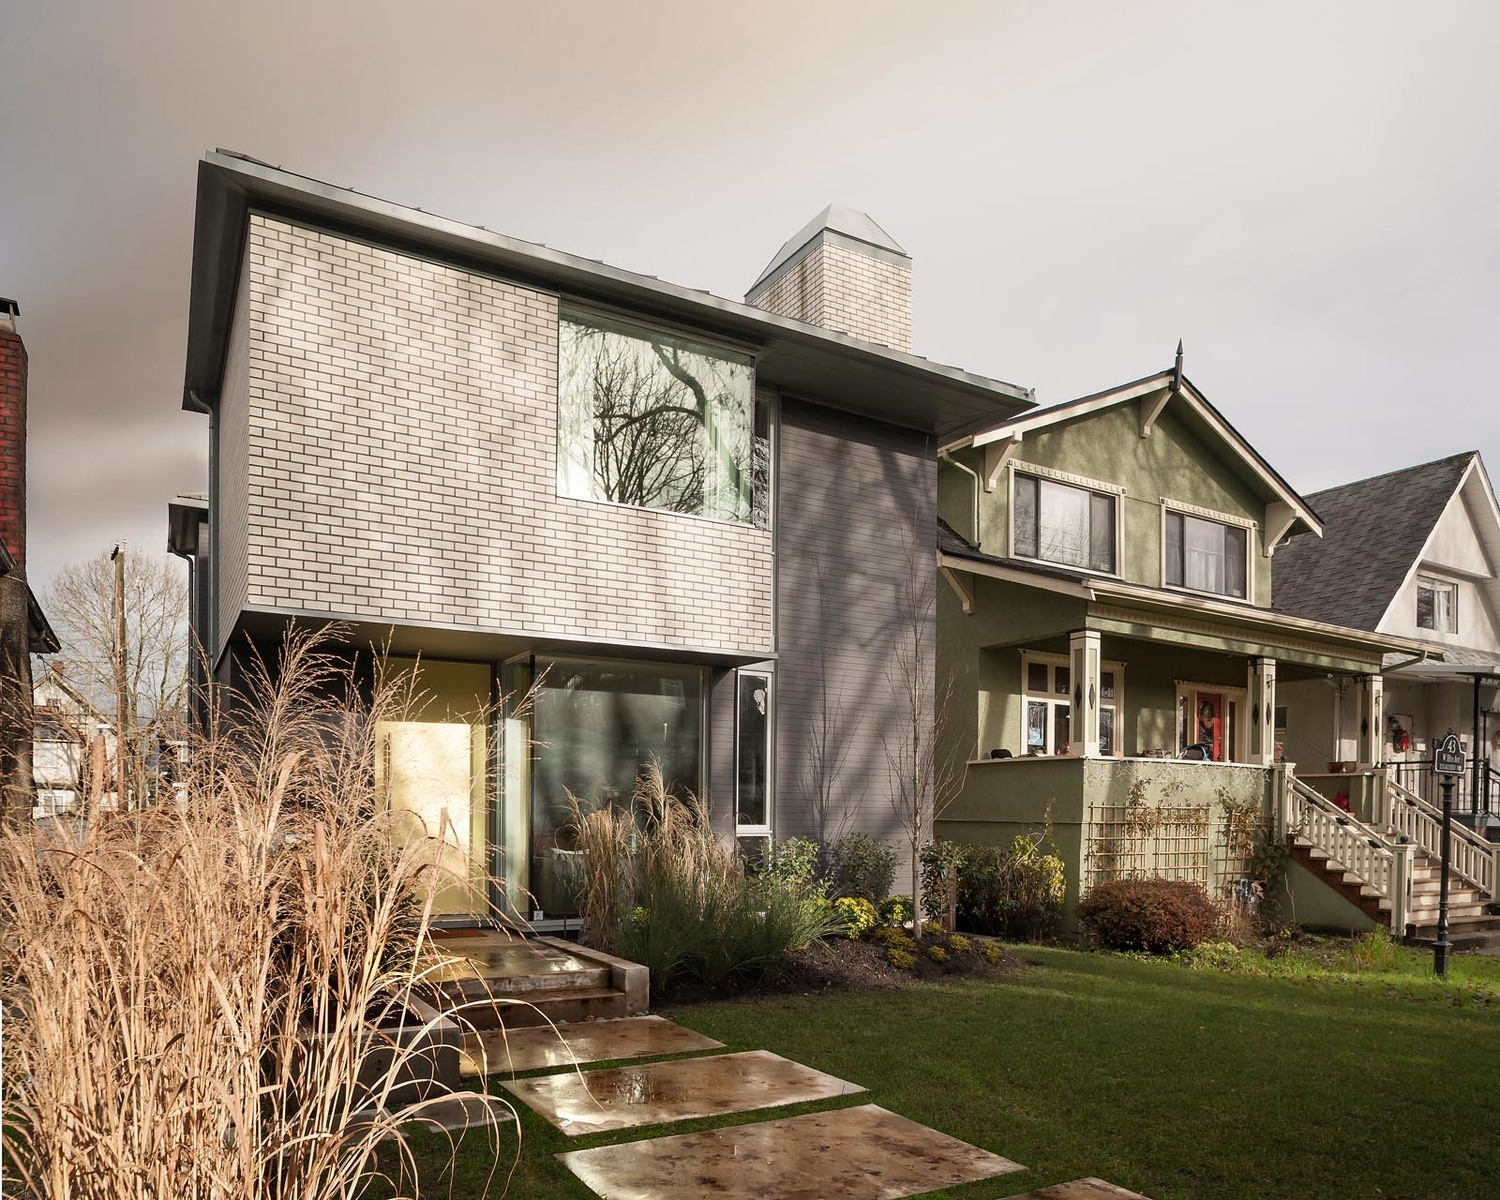 The west coast modern house vancouver residential architecture for Contemporary residential architecture